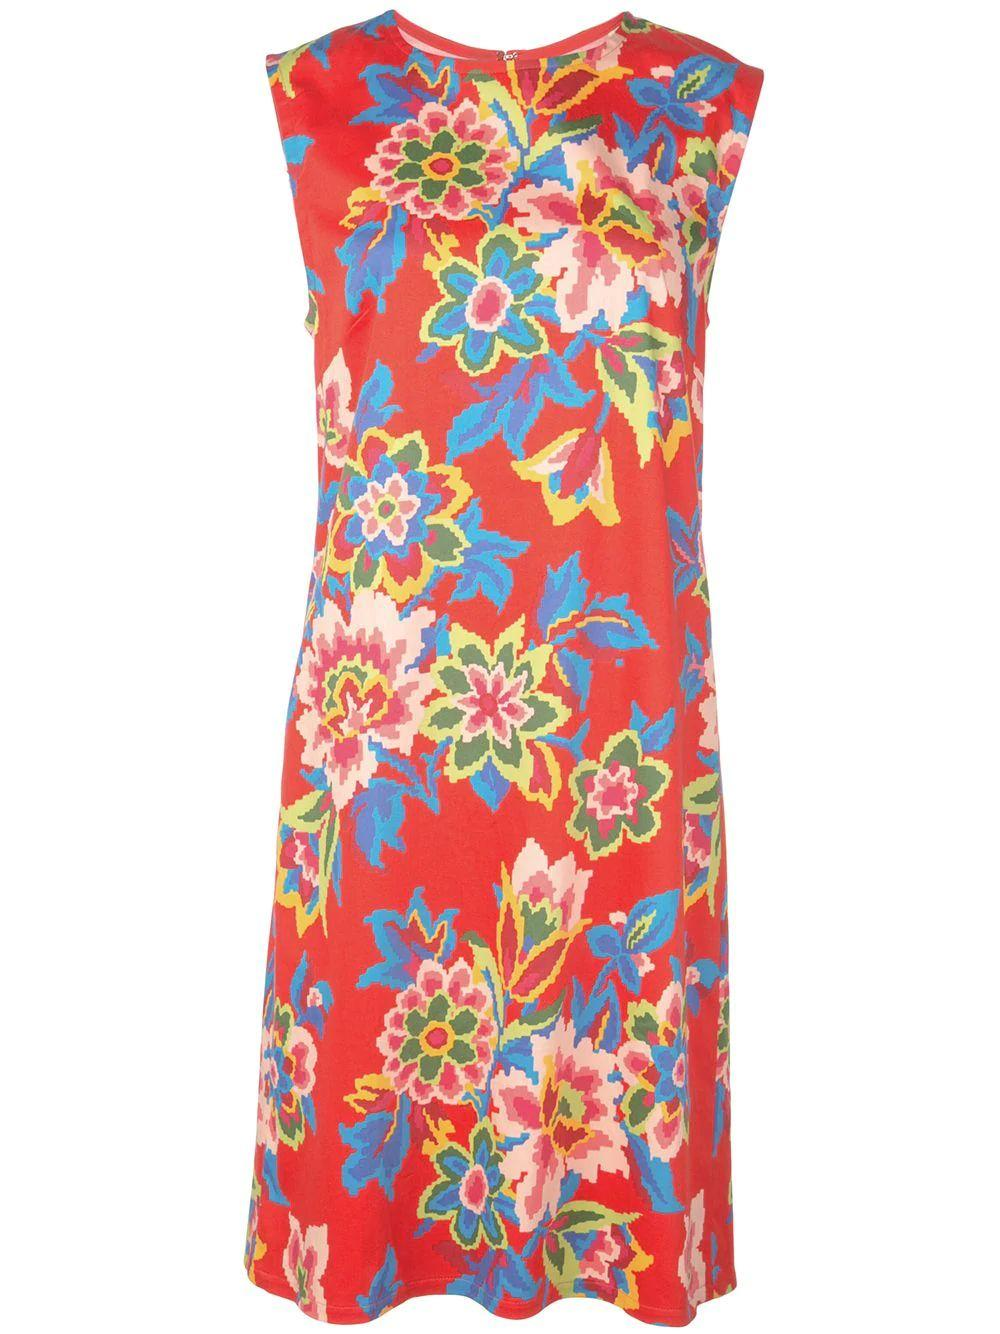 Sleeve Less Pixel Floral Print Shift Dress Item # R2011N500PCS